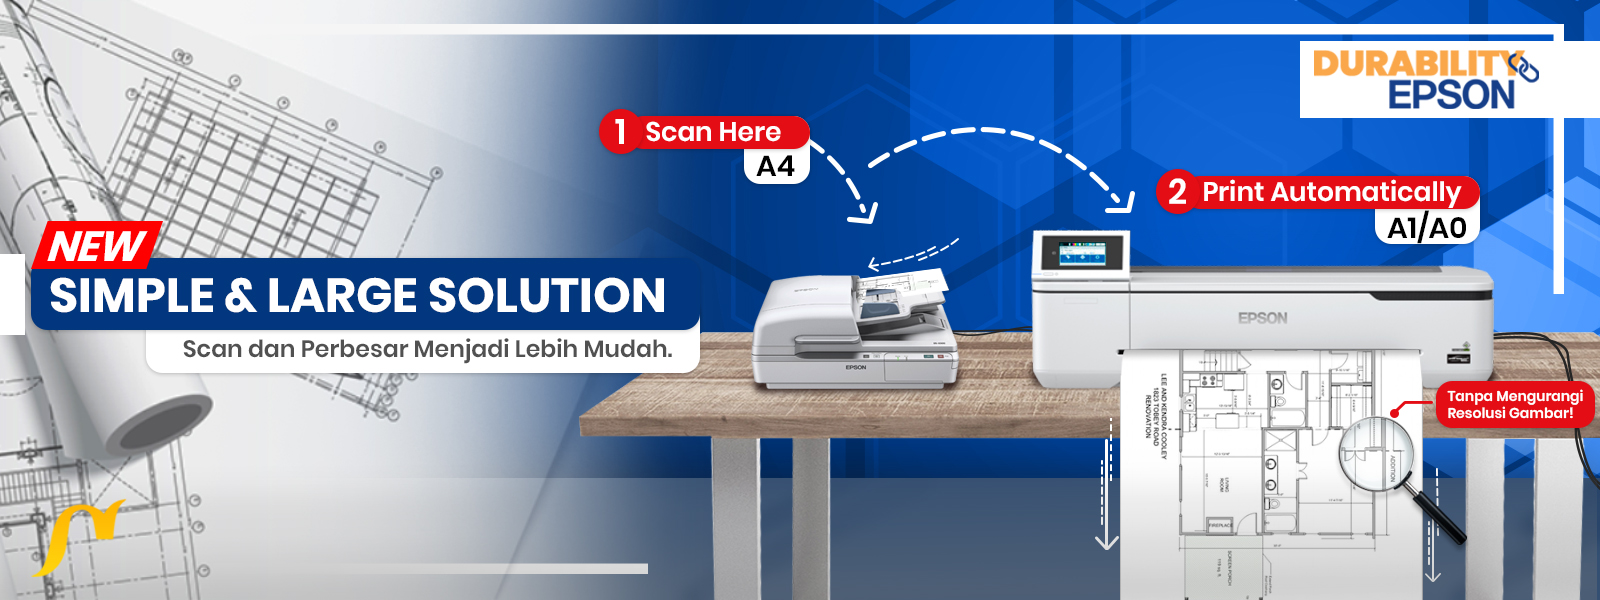 epson technical printer with scanner slider